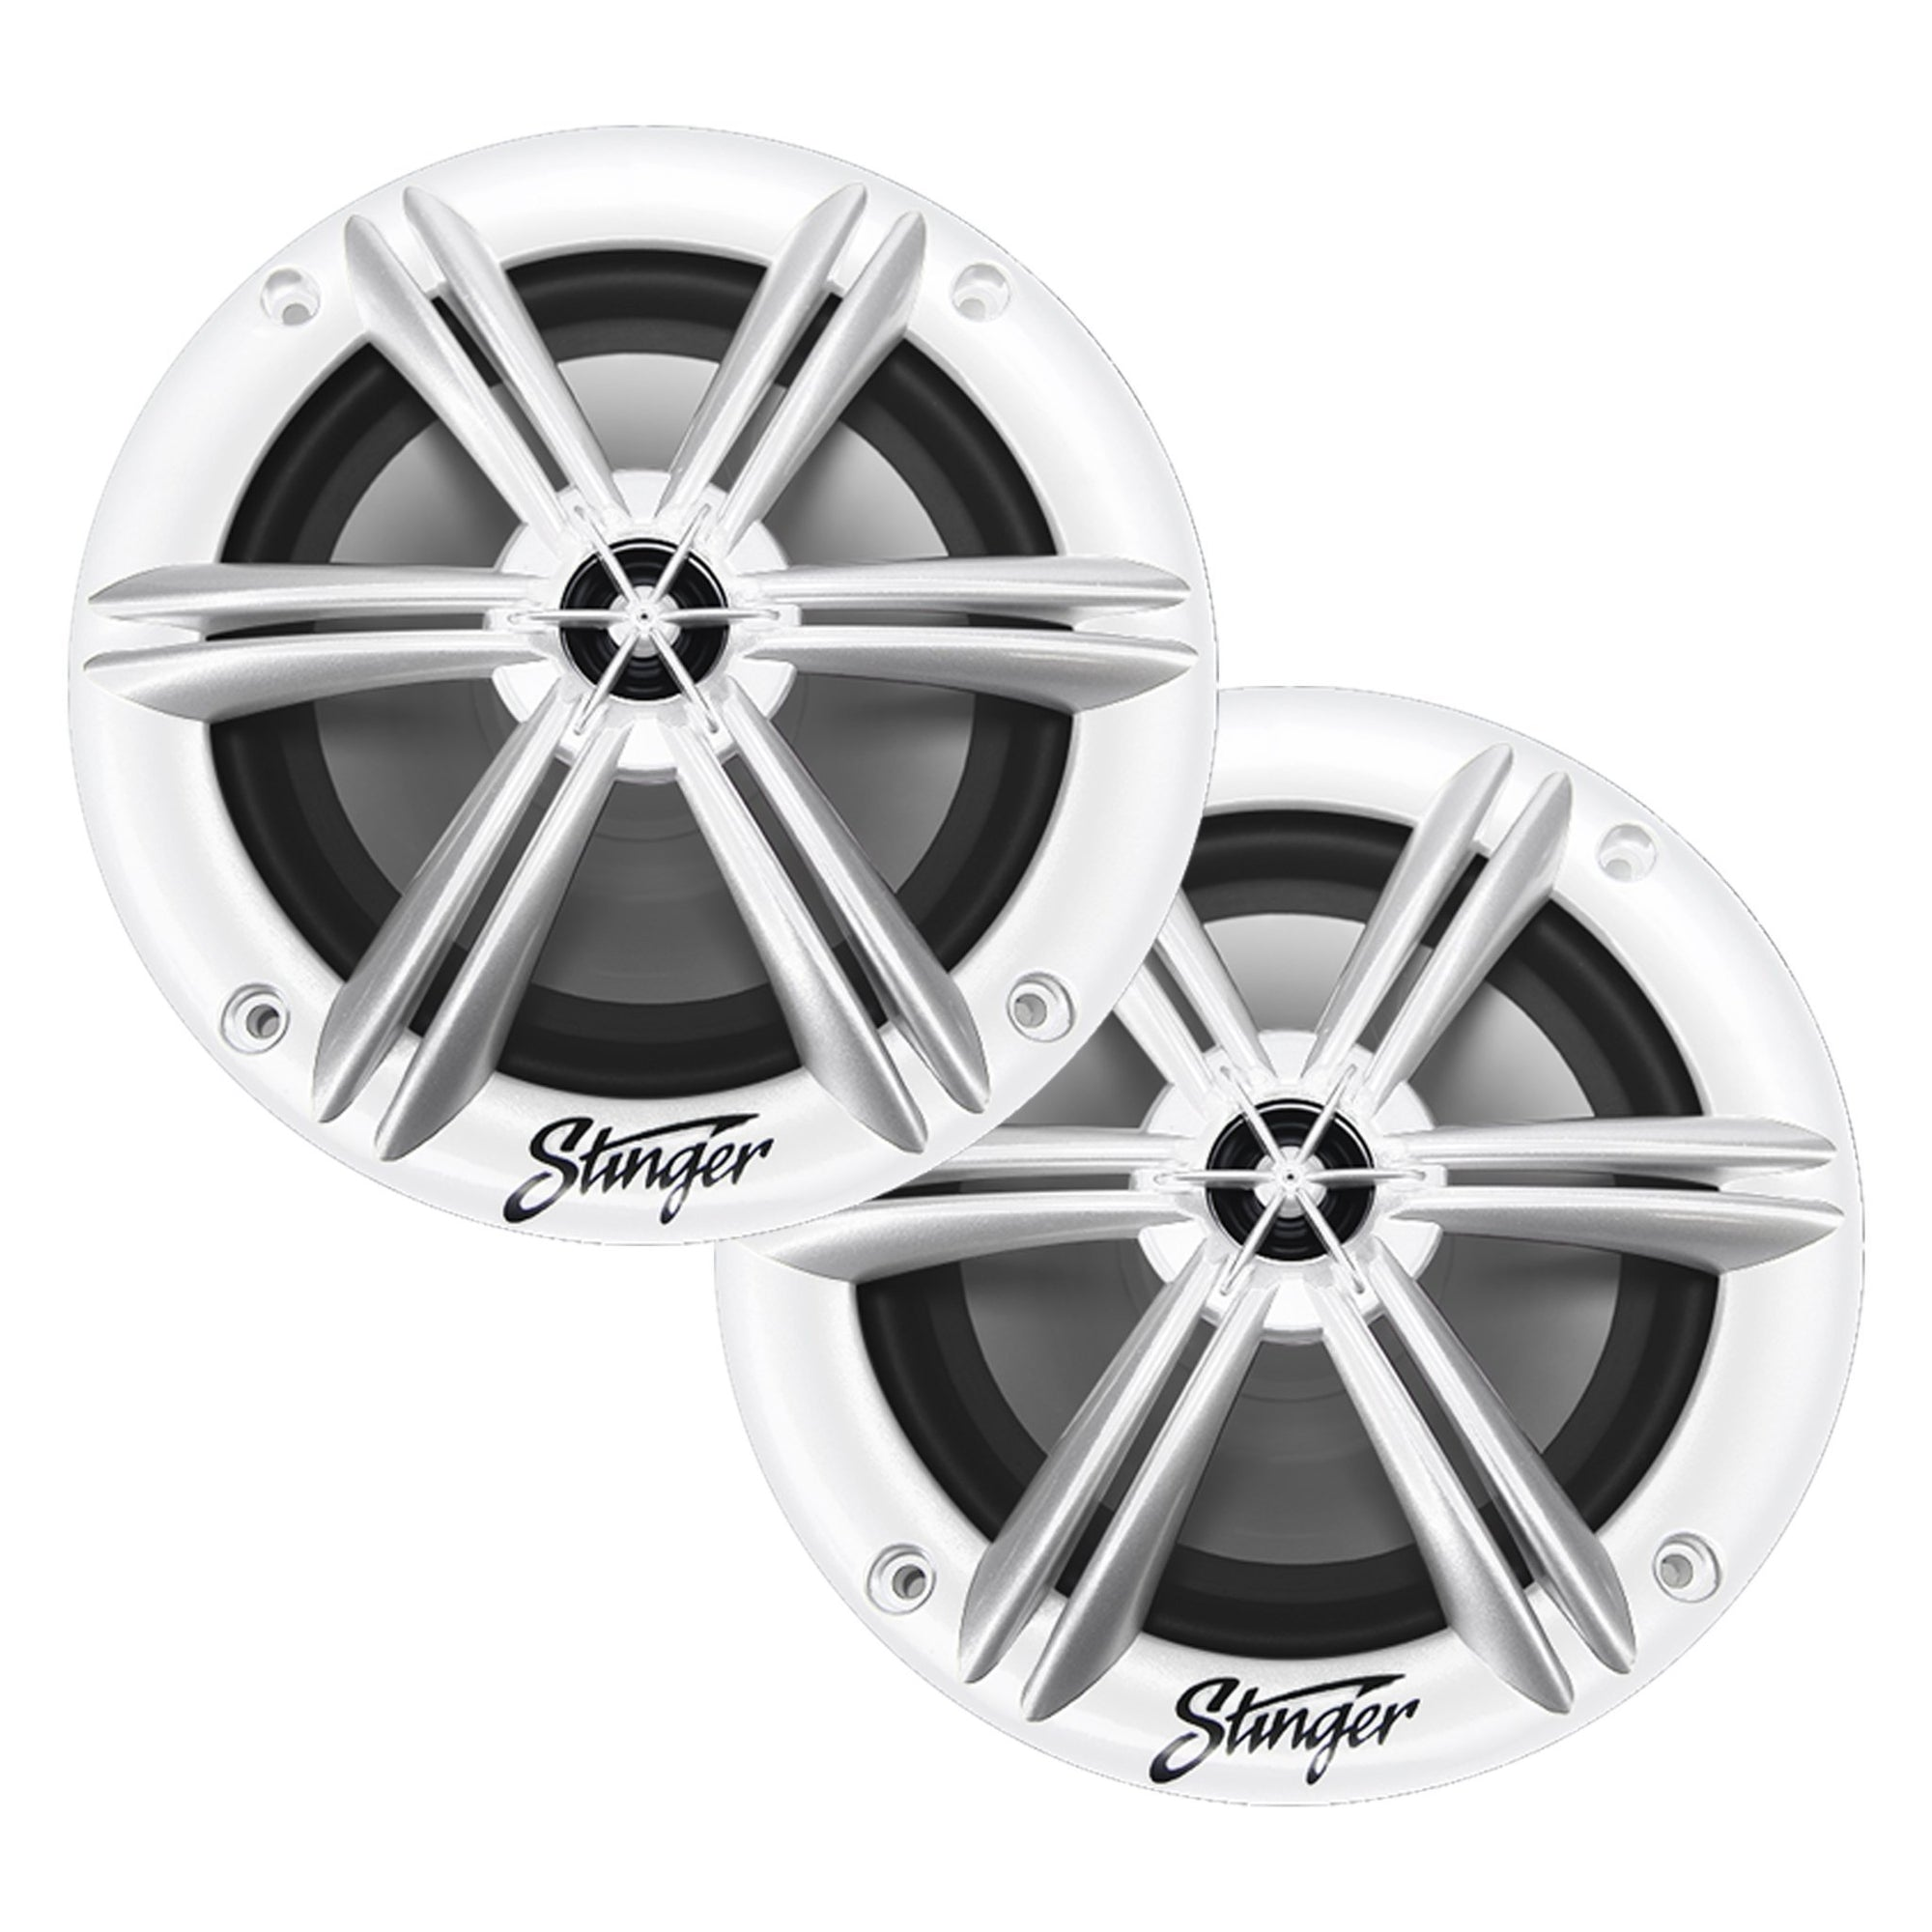 "Marine / Powersports 6.5"" White Coaxial Marine Speakers - Phoenix Gold"